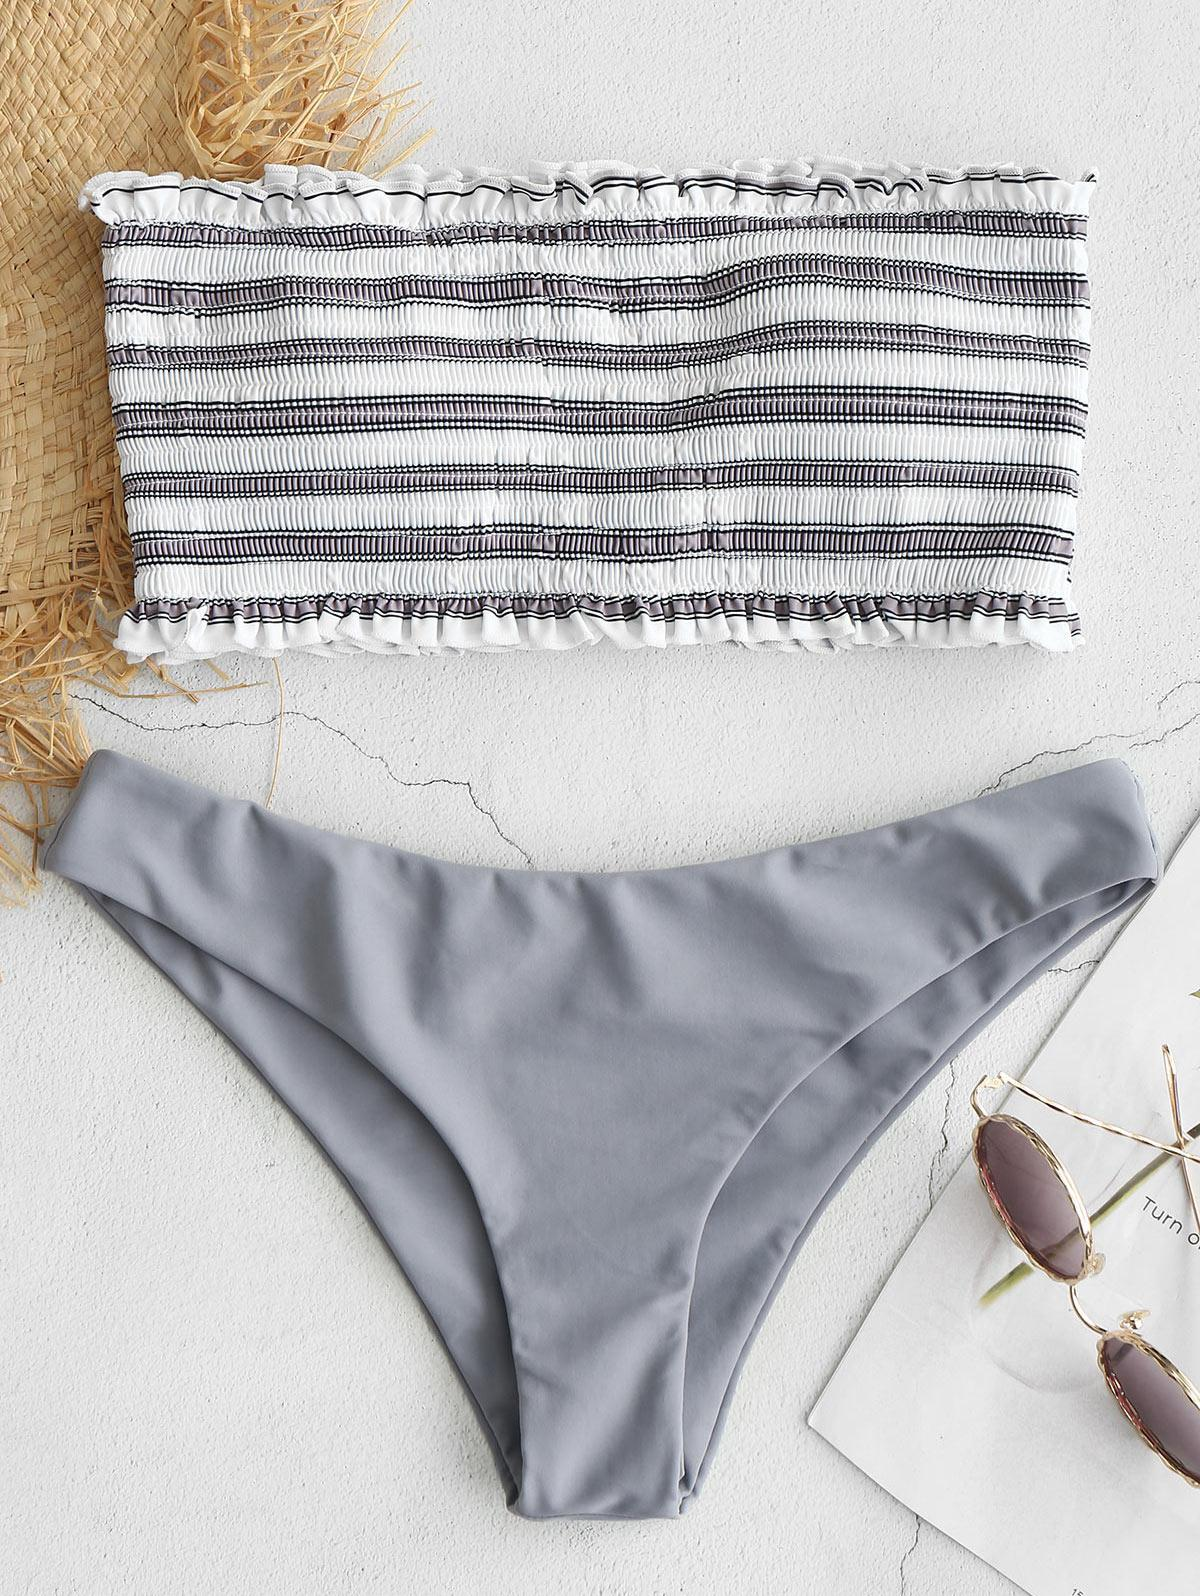 ZAFUL Stripe Smocked Bandeau Bikini Set, Gray cloud